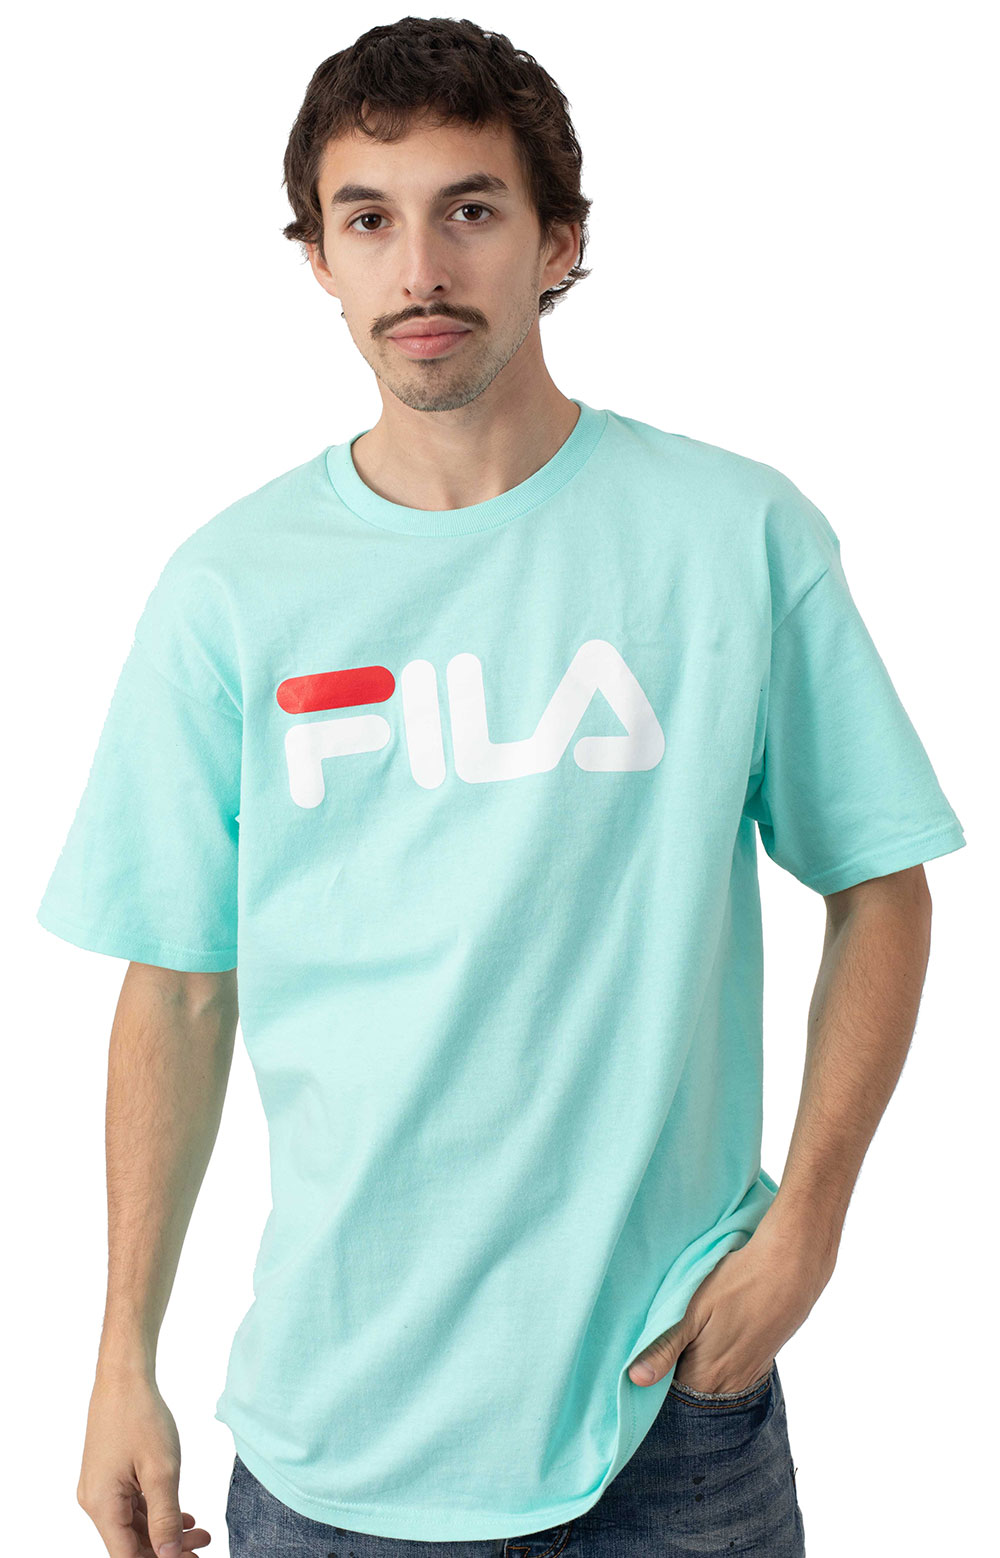 Fila Printed T-Shirt - Teal